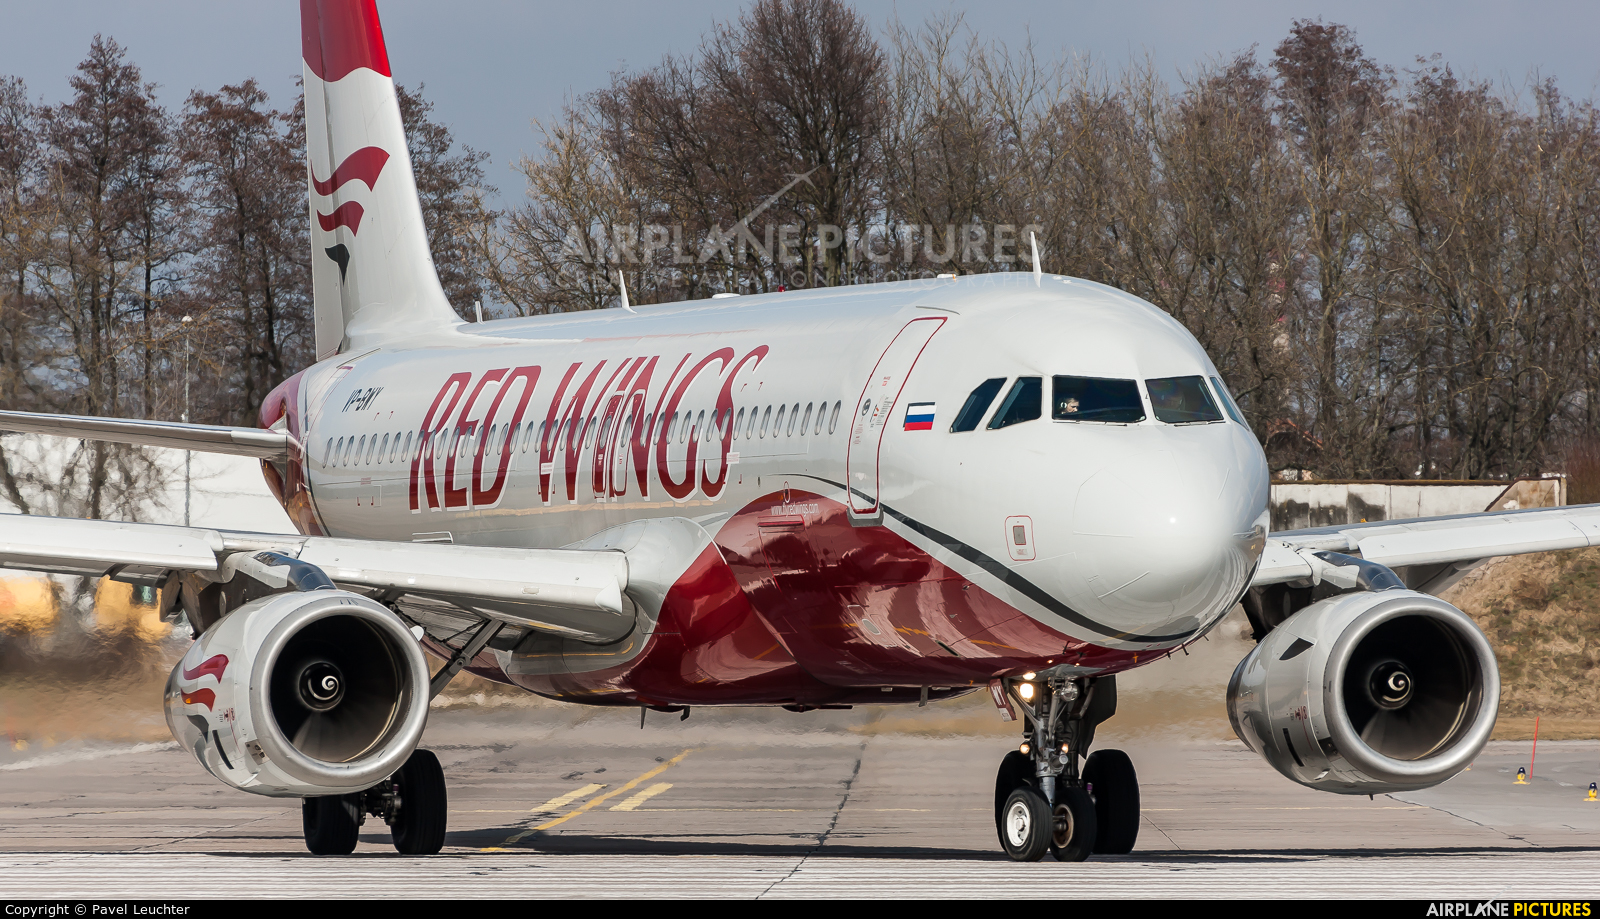 Red Wings VP-BWY aircraft at Pardubice